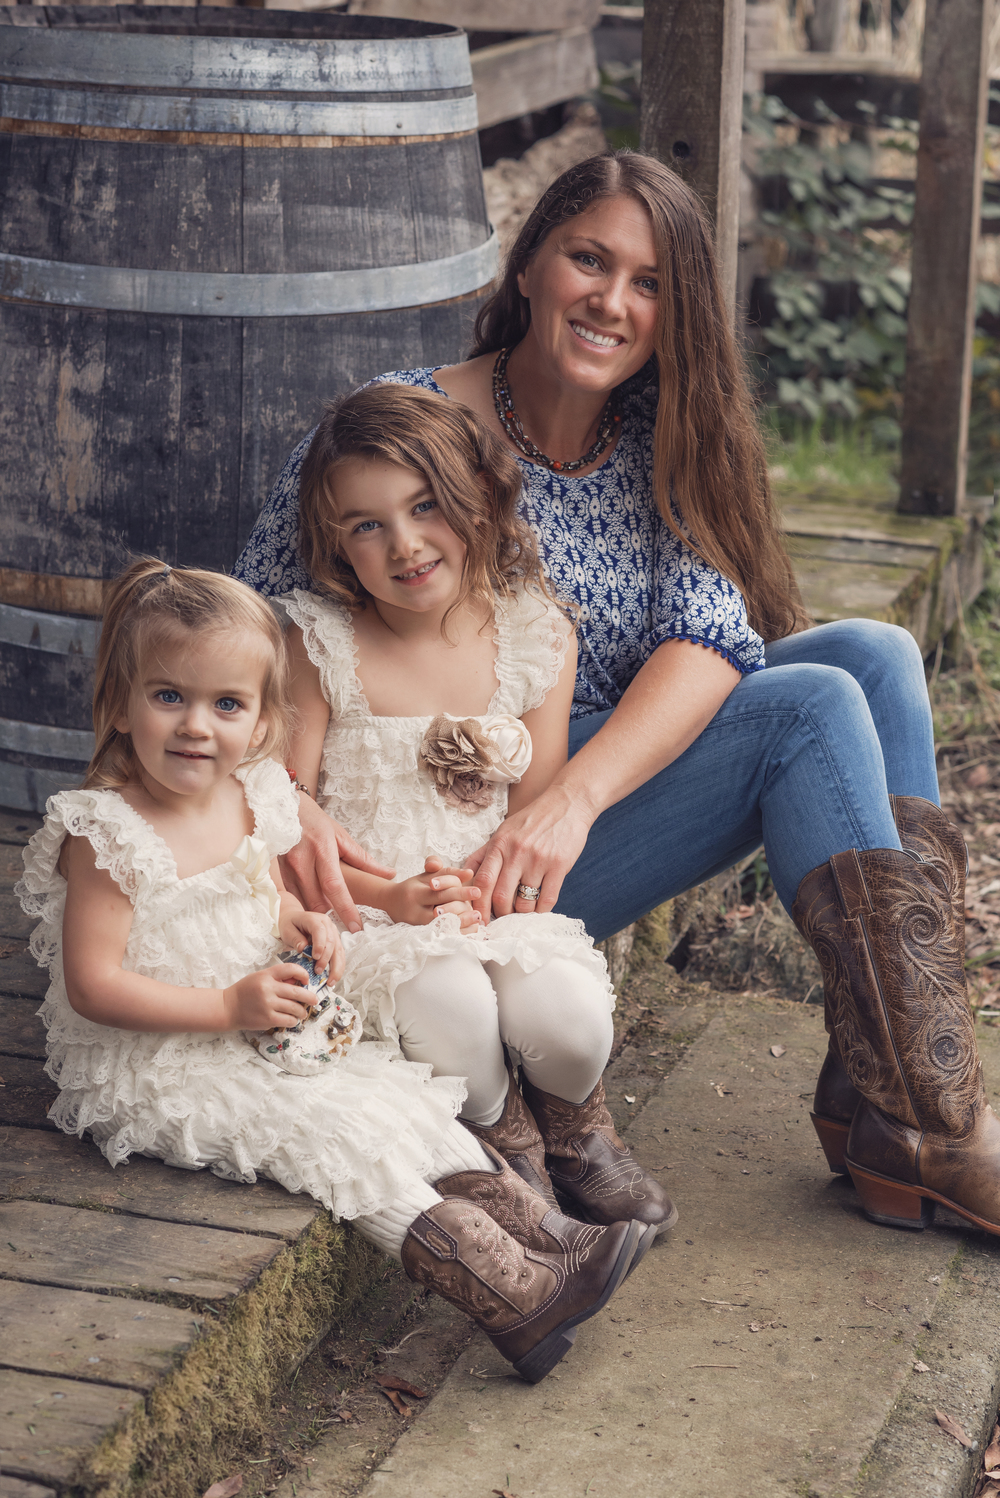 Girls-Country-Cowgirls-Boots-Coyboy-Beauty-Natural-Family-Daughters-Sisters-Redway-Barn-Rustic-Vintage-